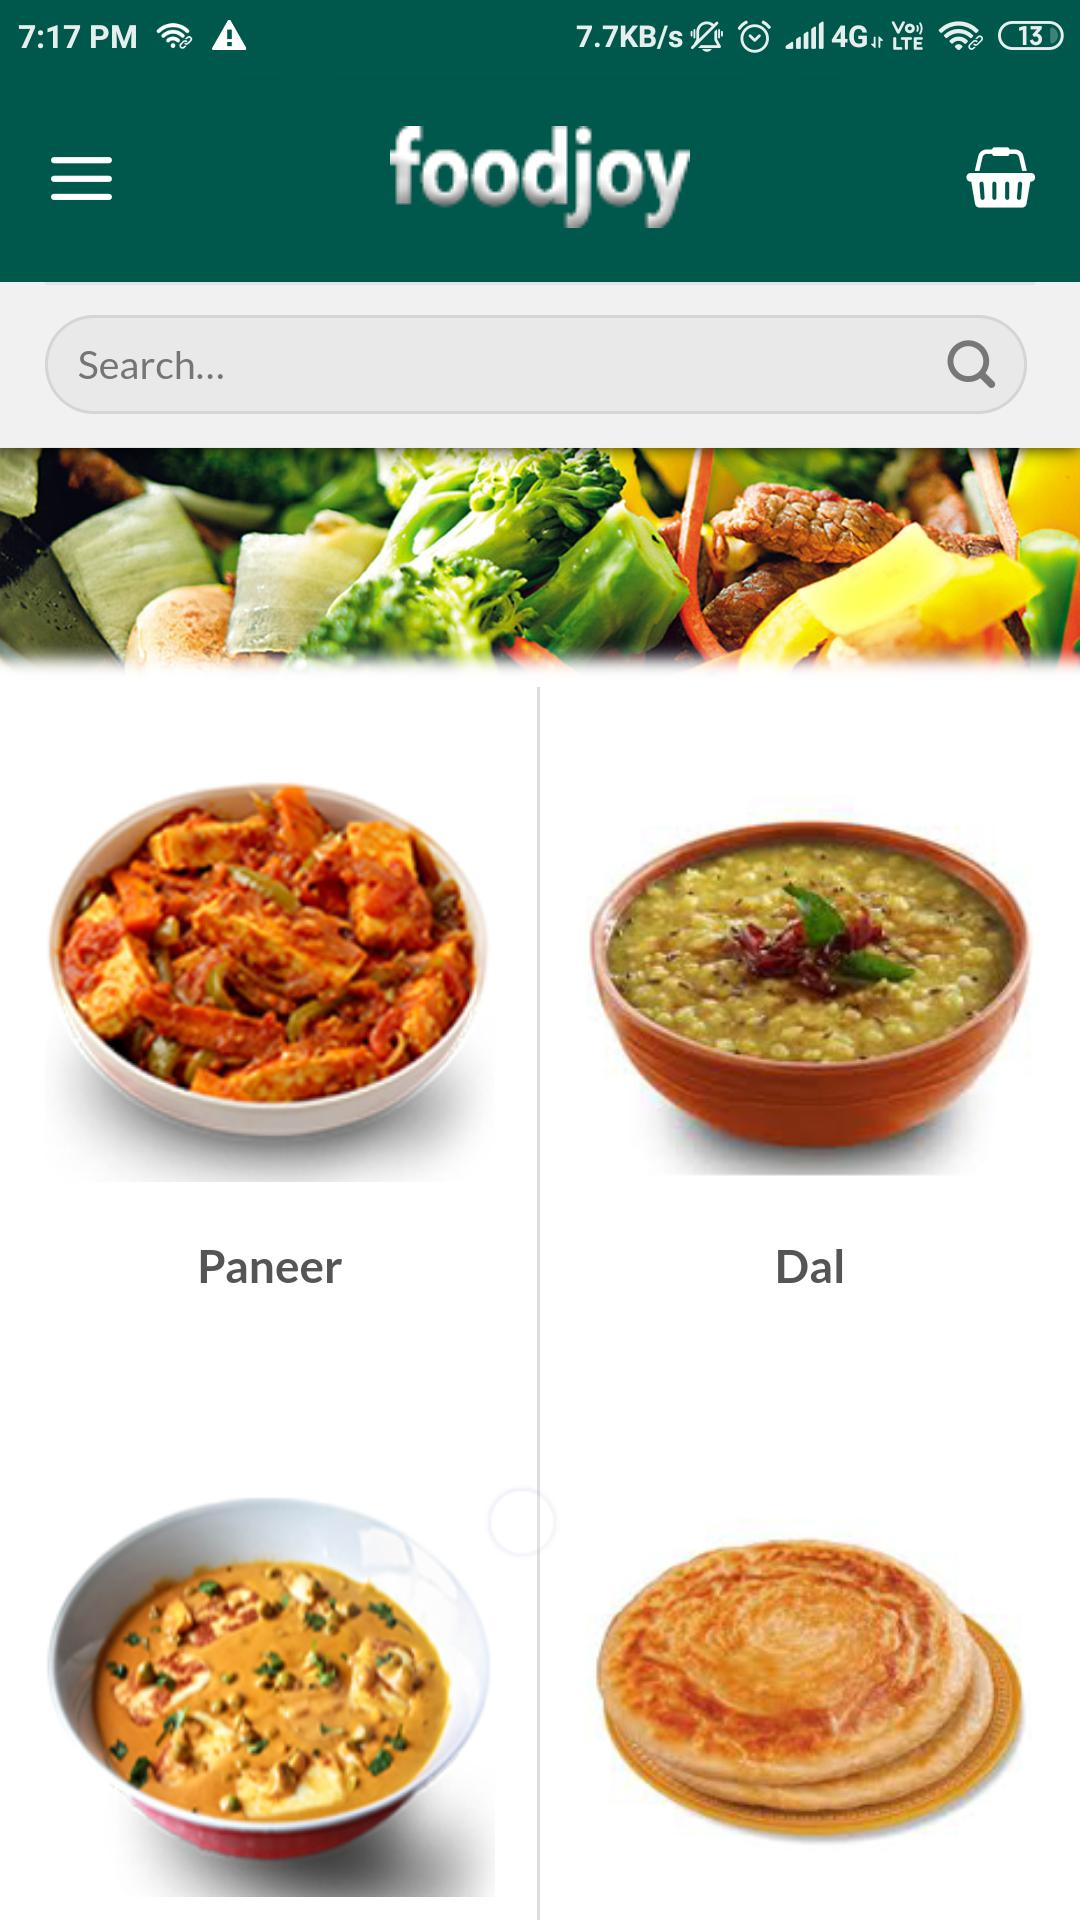 foodjoy - Food Delivery App for Android - APK Download